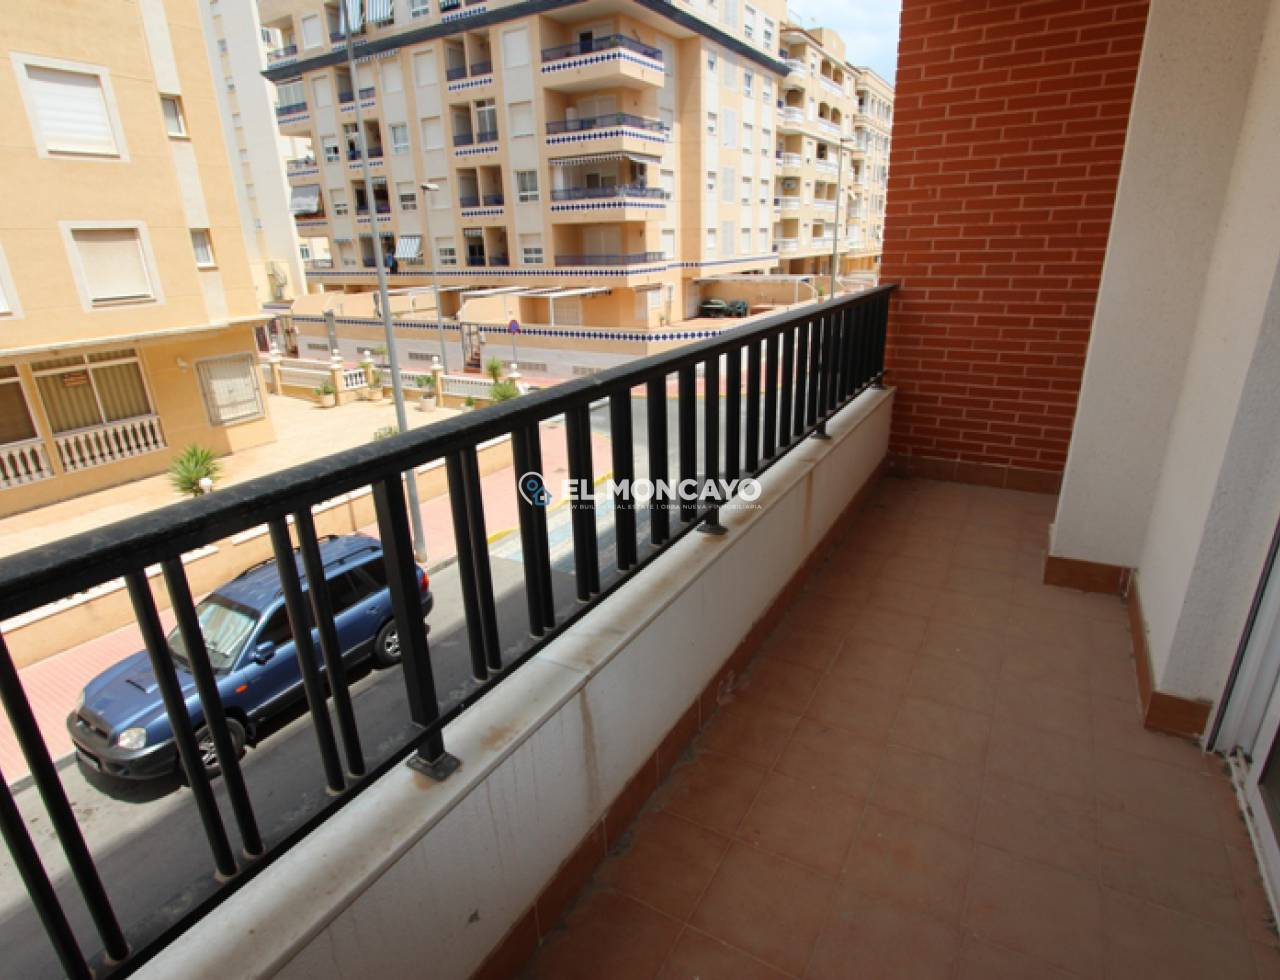 Apartment 3 bedrooms new construction in Guardamar del Segura (Costa Blanca) (14)